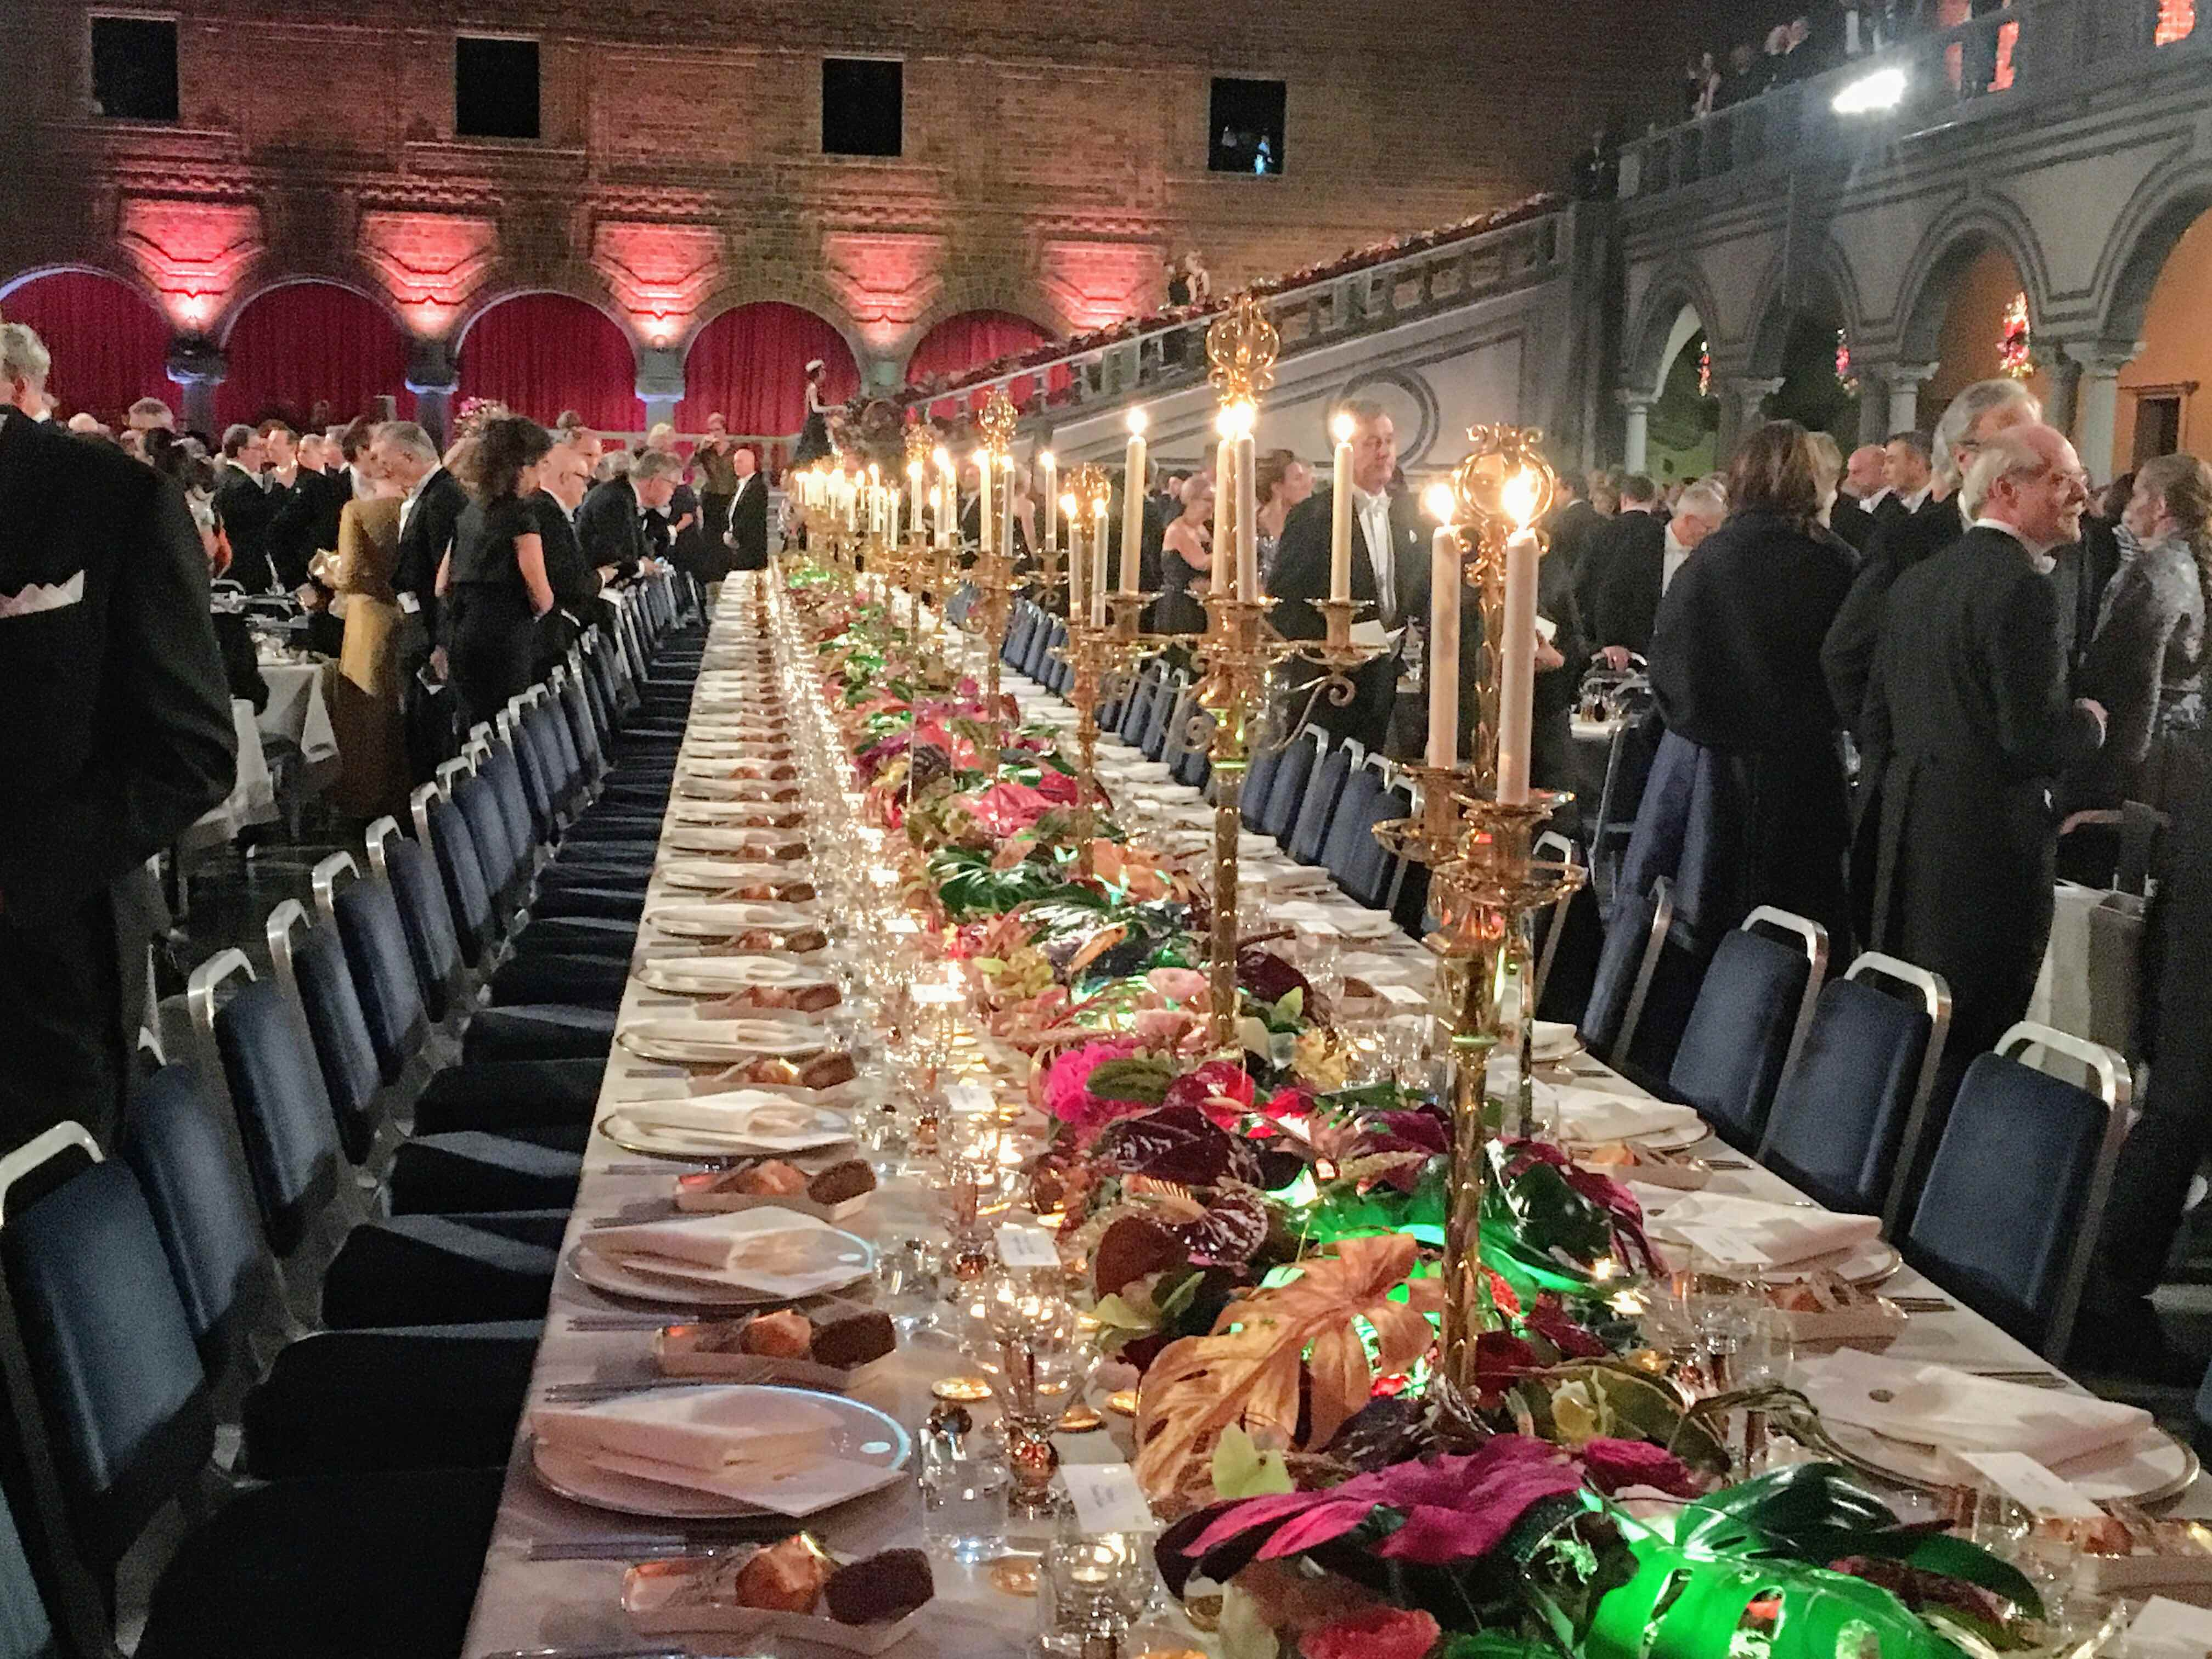 The Nobel banquet table